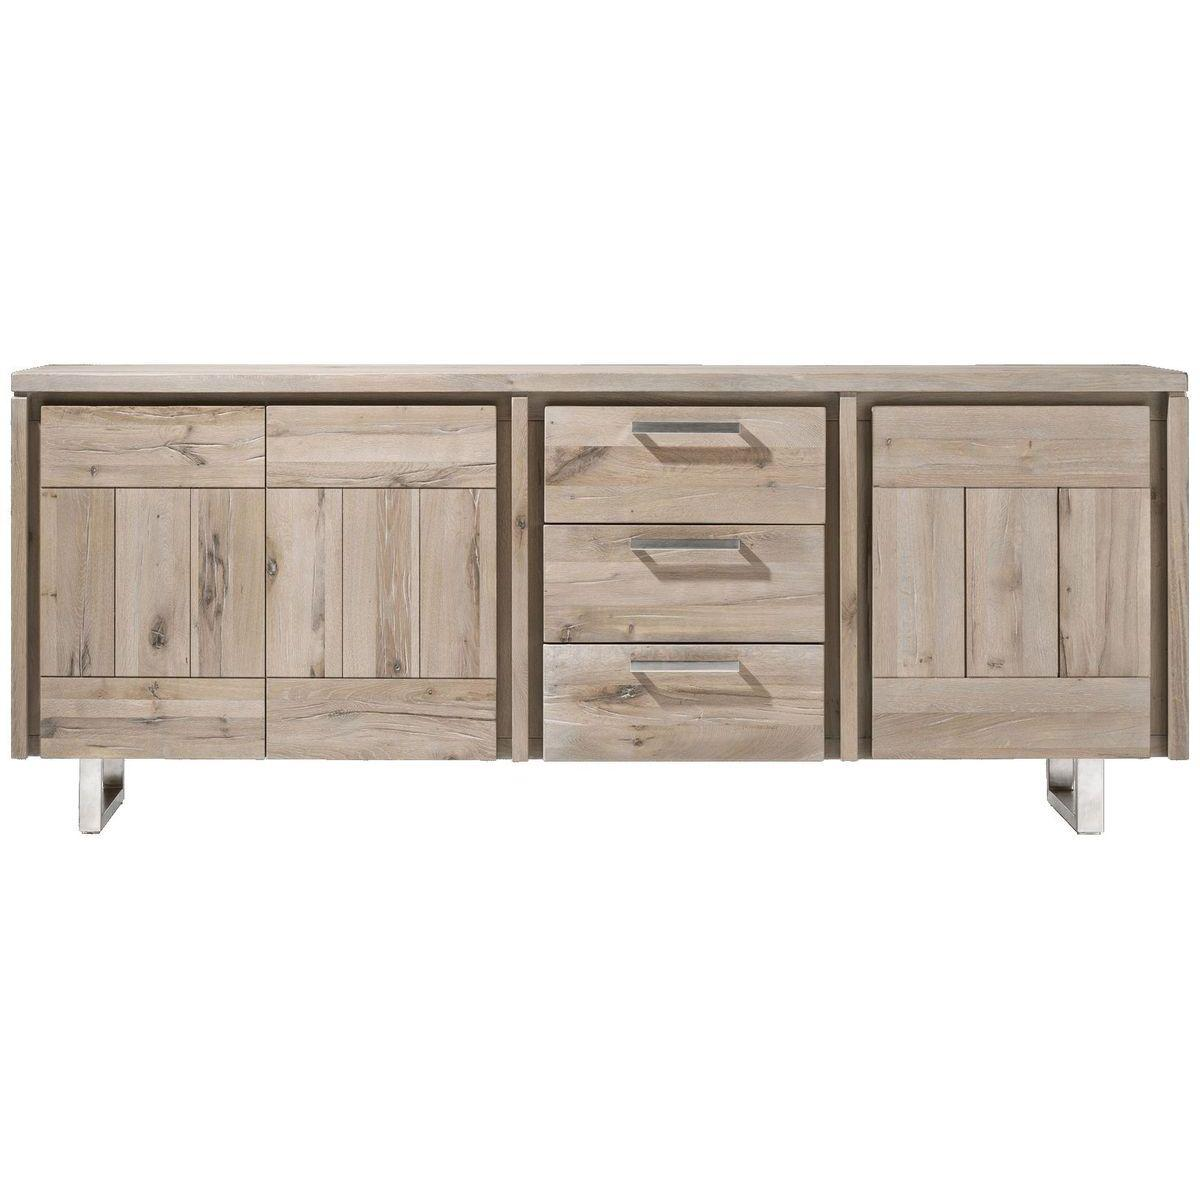 MORE by H&H Buffet 220cm